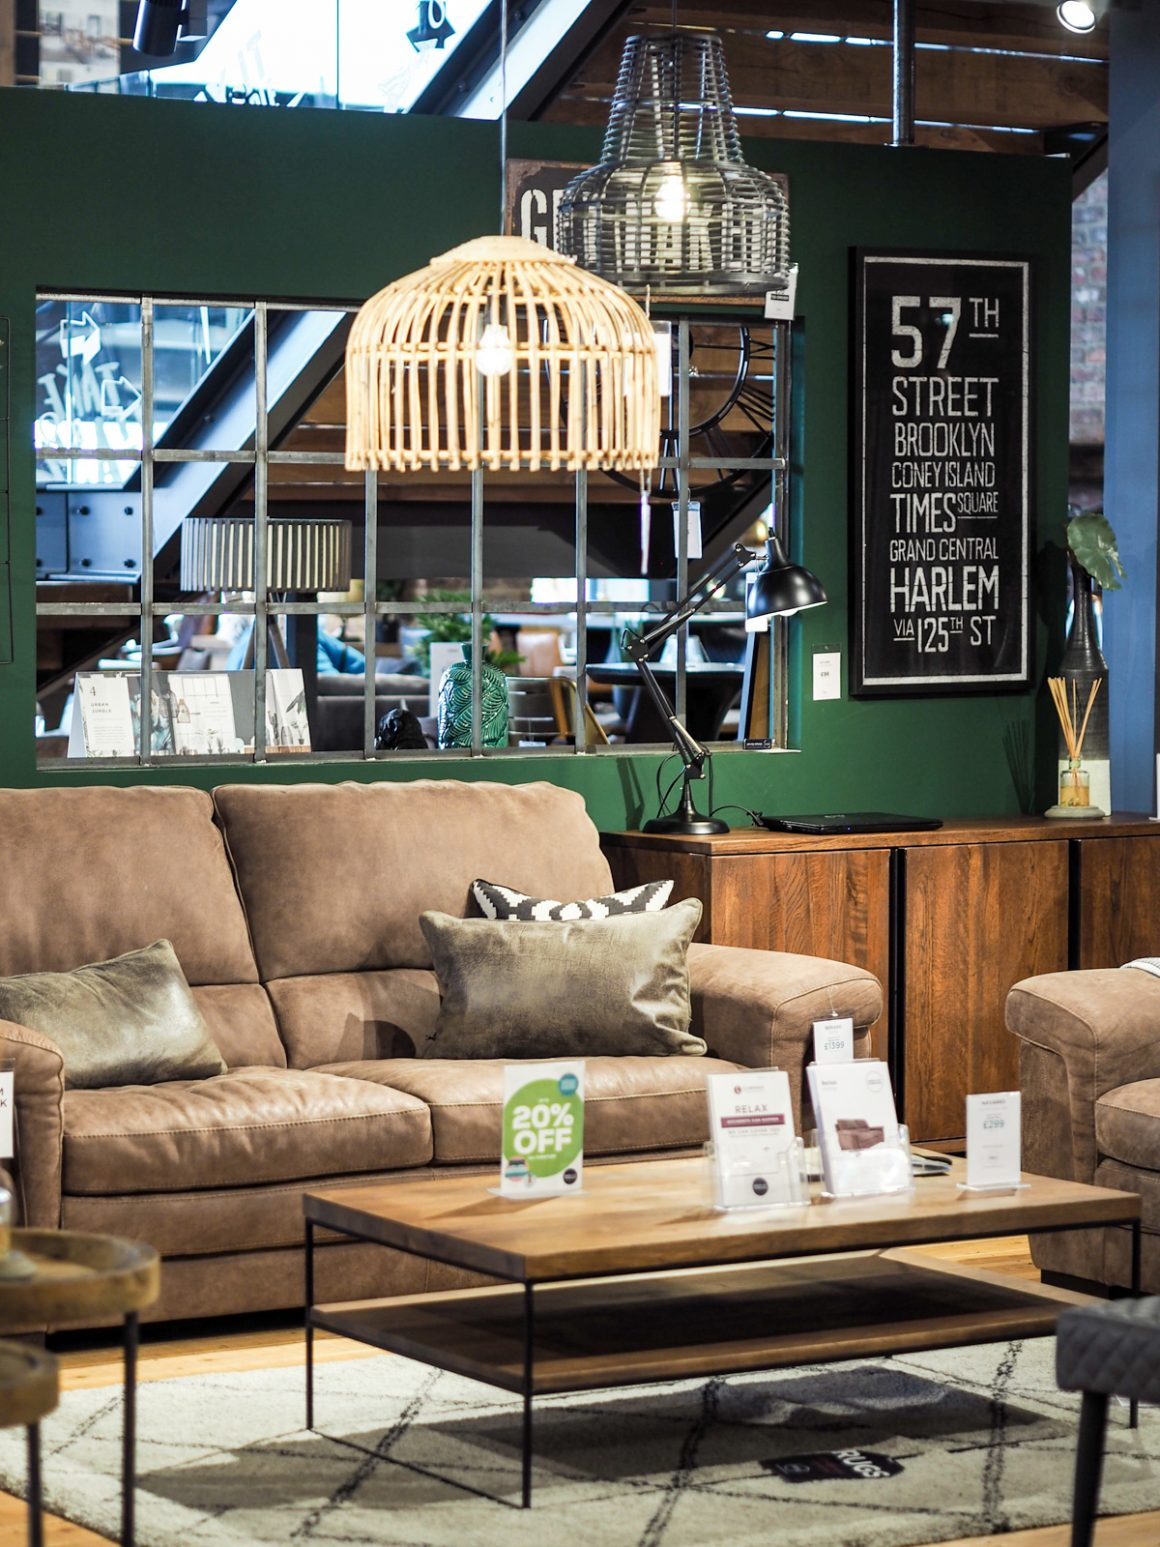 Urban interior inspiration at Barker and Stonehouse in Leeds